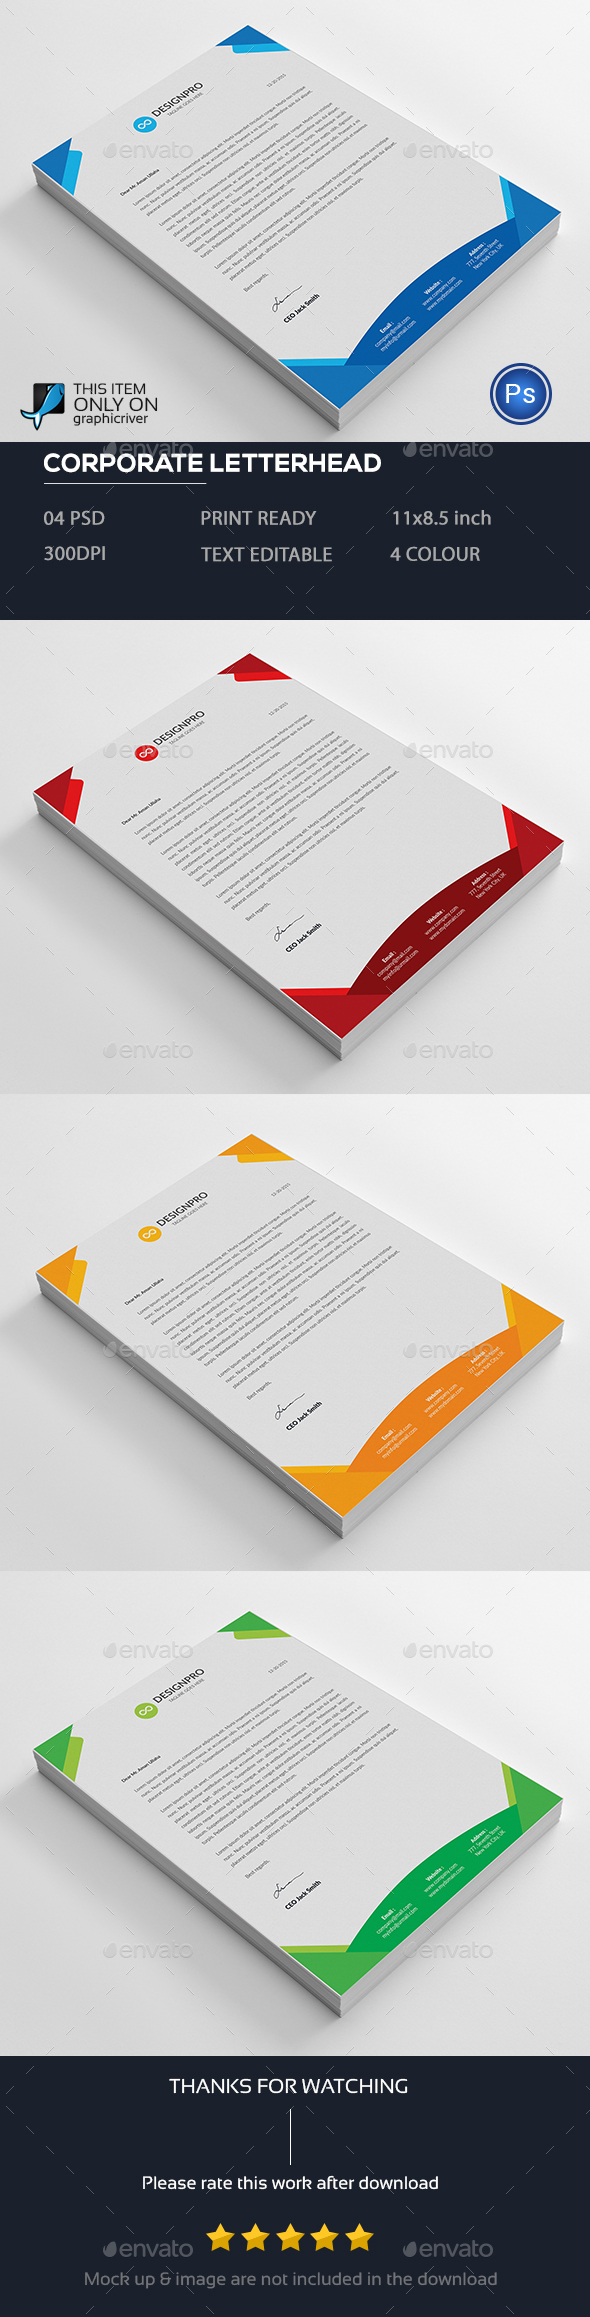 Letterhead template by designstemplate graphicriver letterhead template stationery print templates spiritdancerdesigns Choice Image